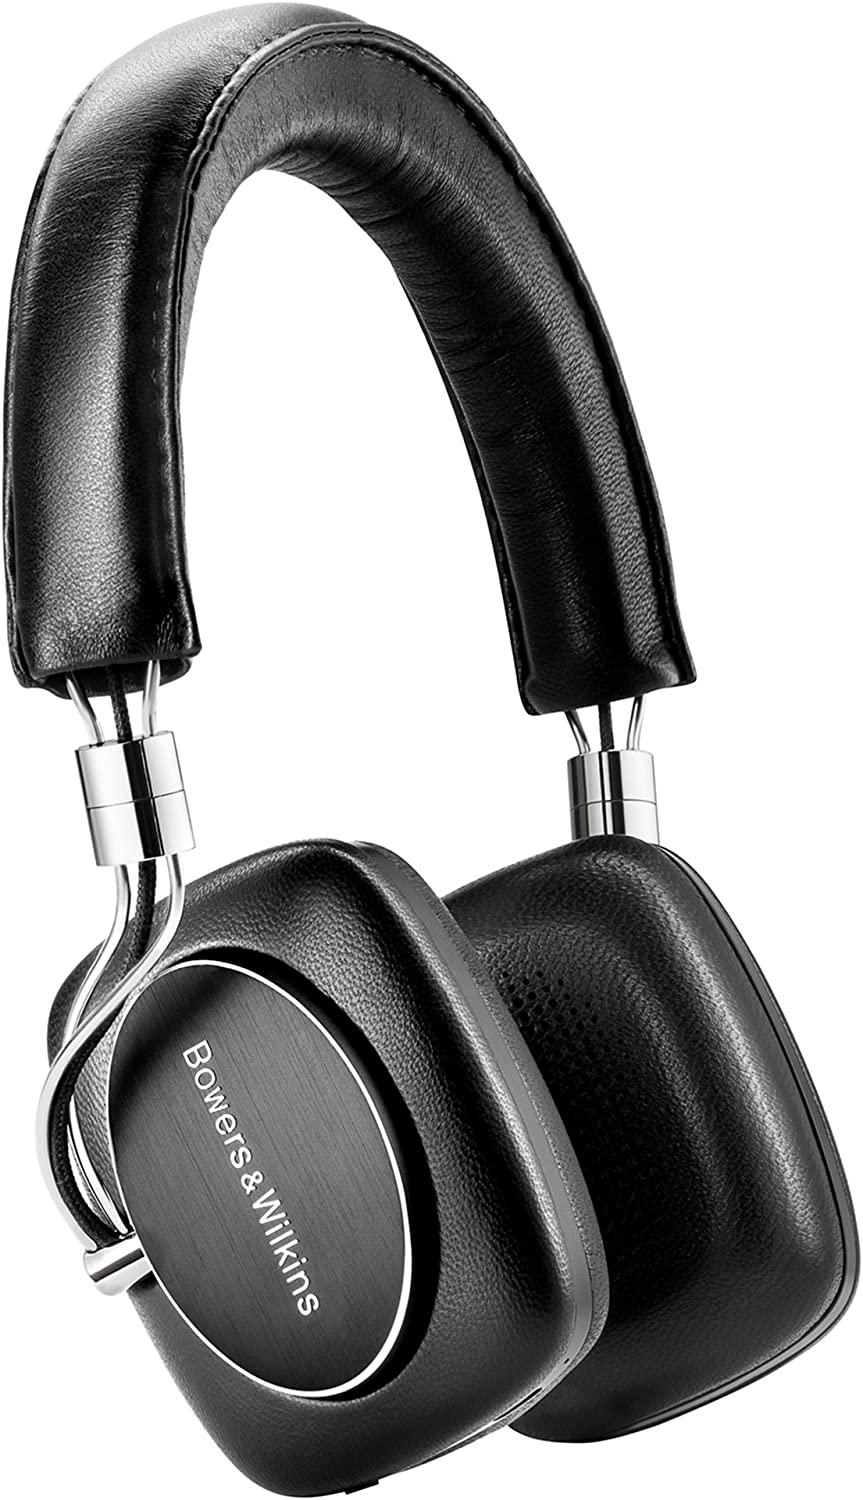 Bowers & Wilkins P5 Wireless Headphone RC, Black (Renewed)